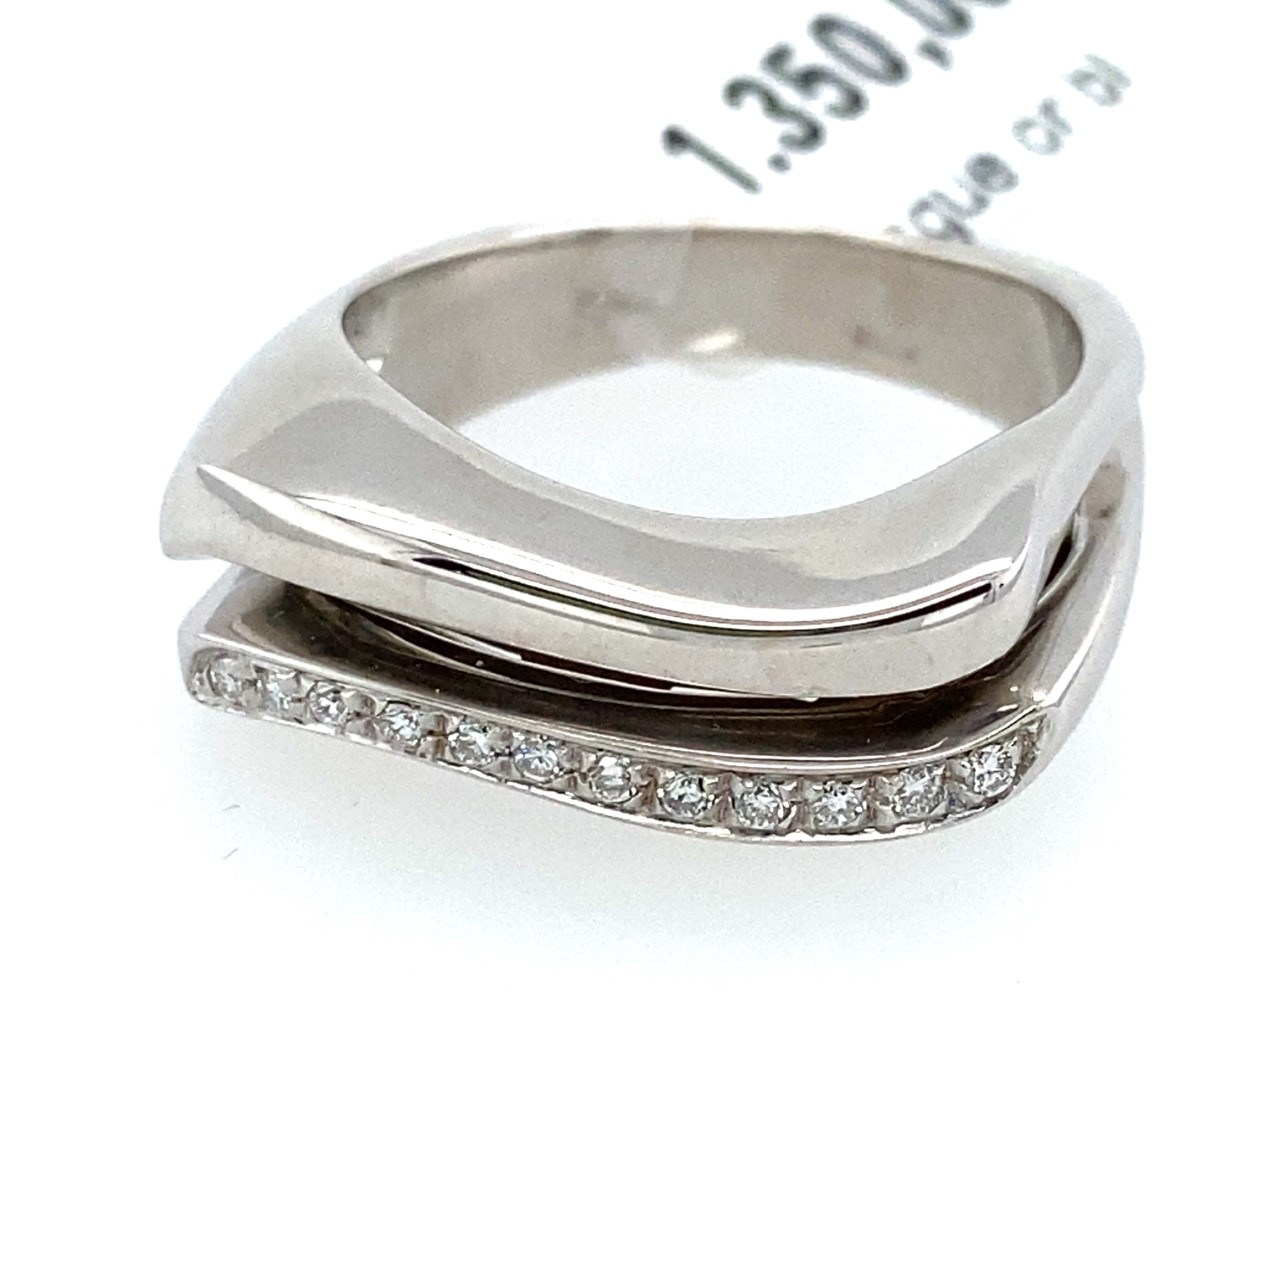 Handmade curved cut white gold ring with diamonds